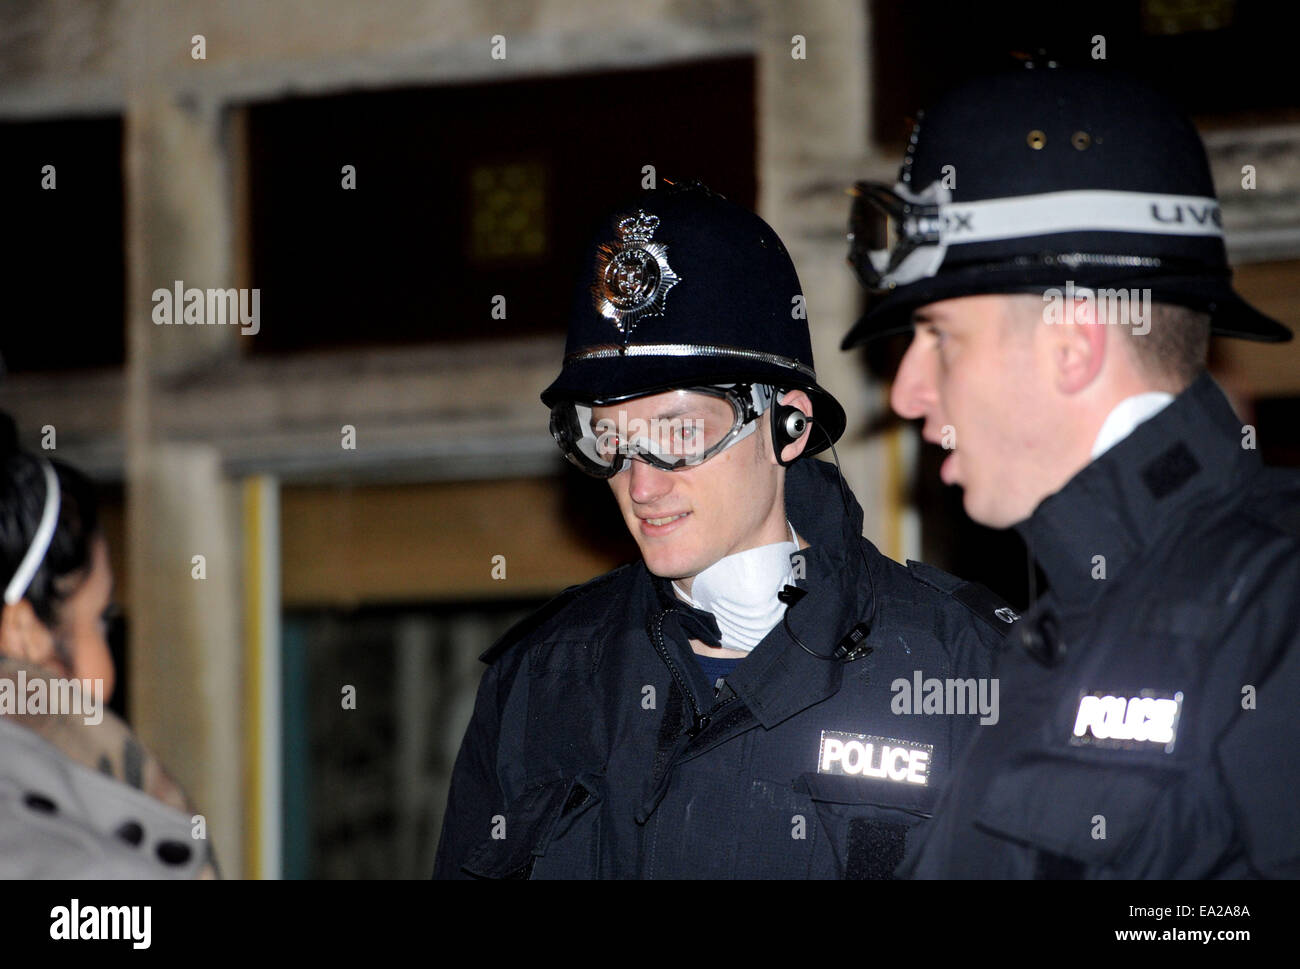 Lewes, Sussex, UK. 5th November, 2014. Police issued with protective goggles at the annual Lewes Bonfire Celebrations - Stock Image